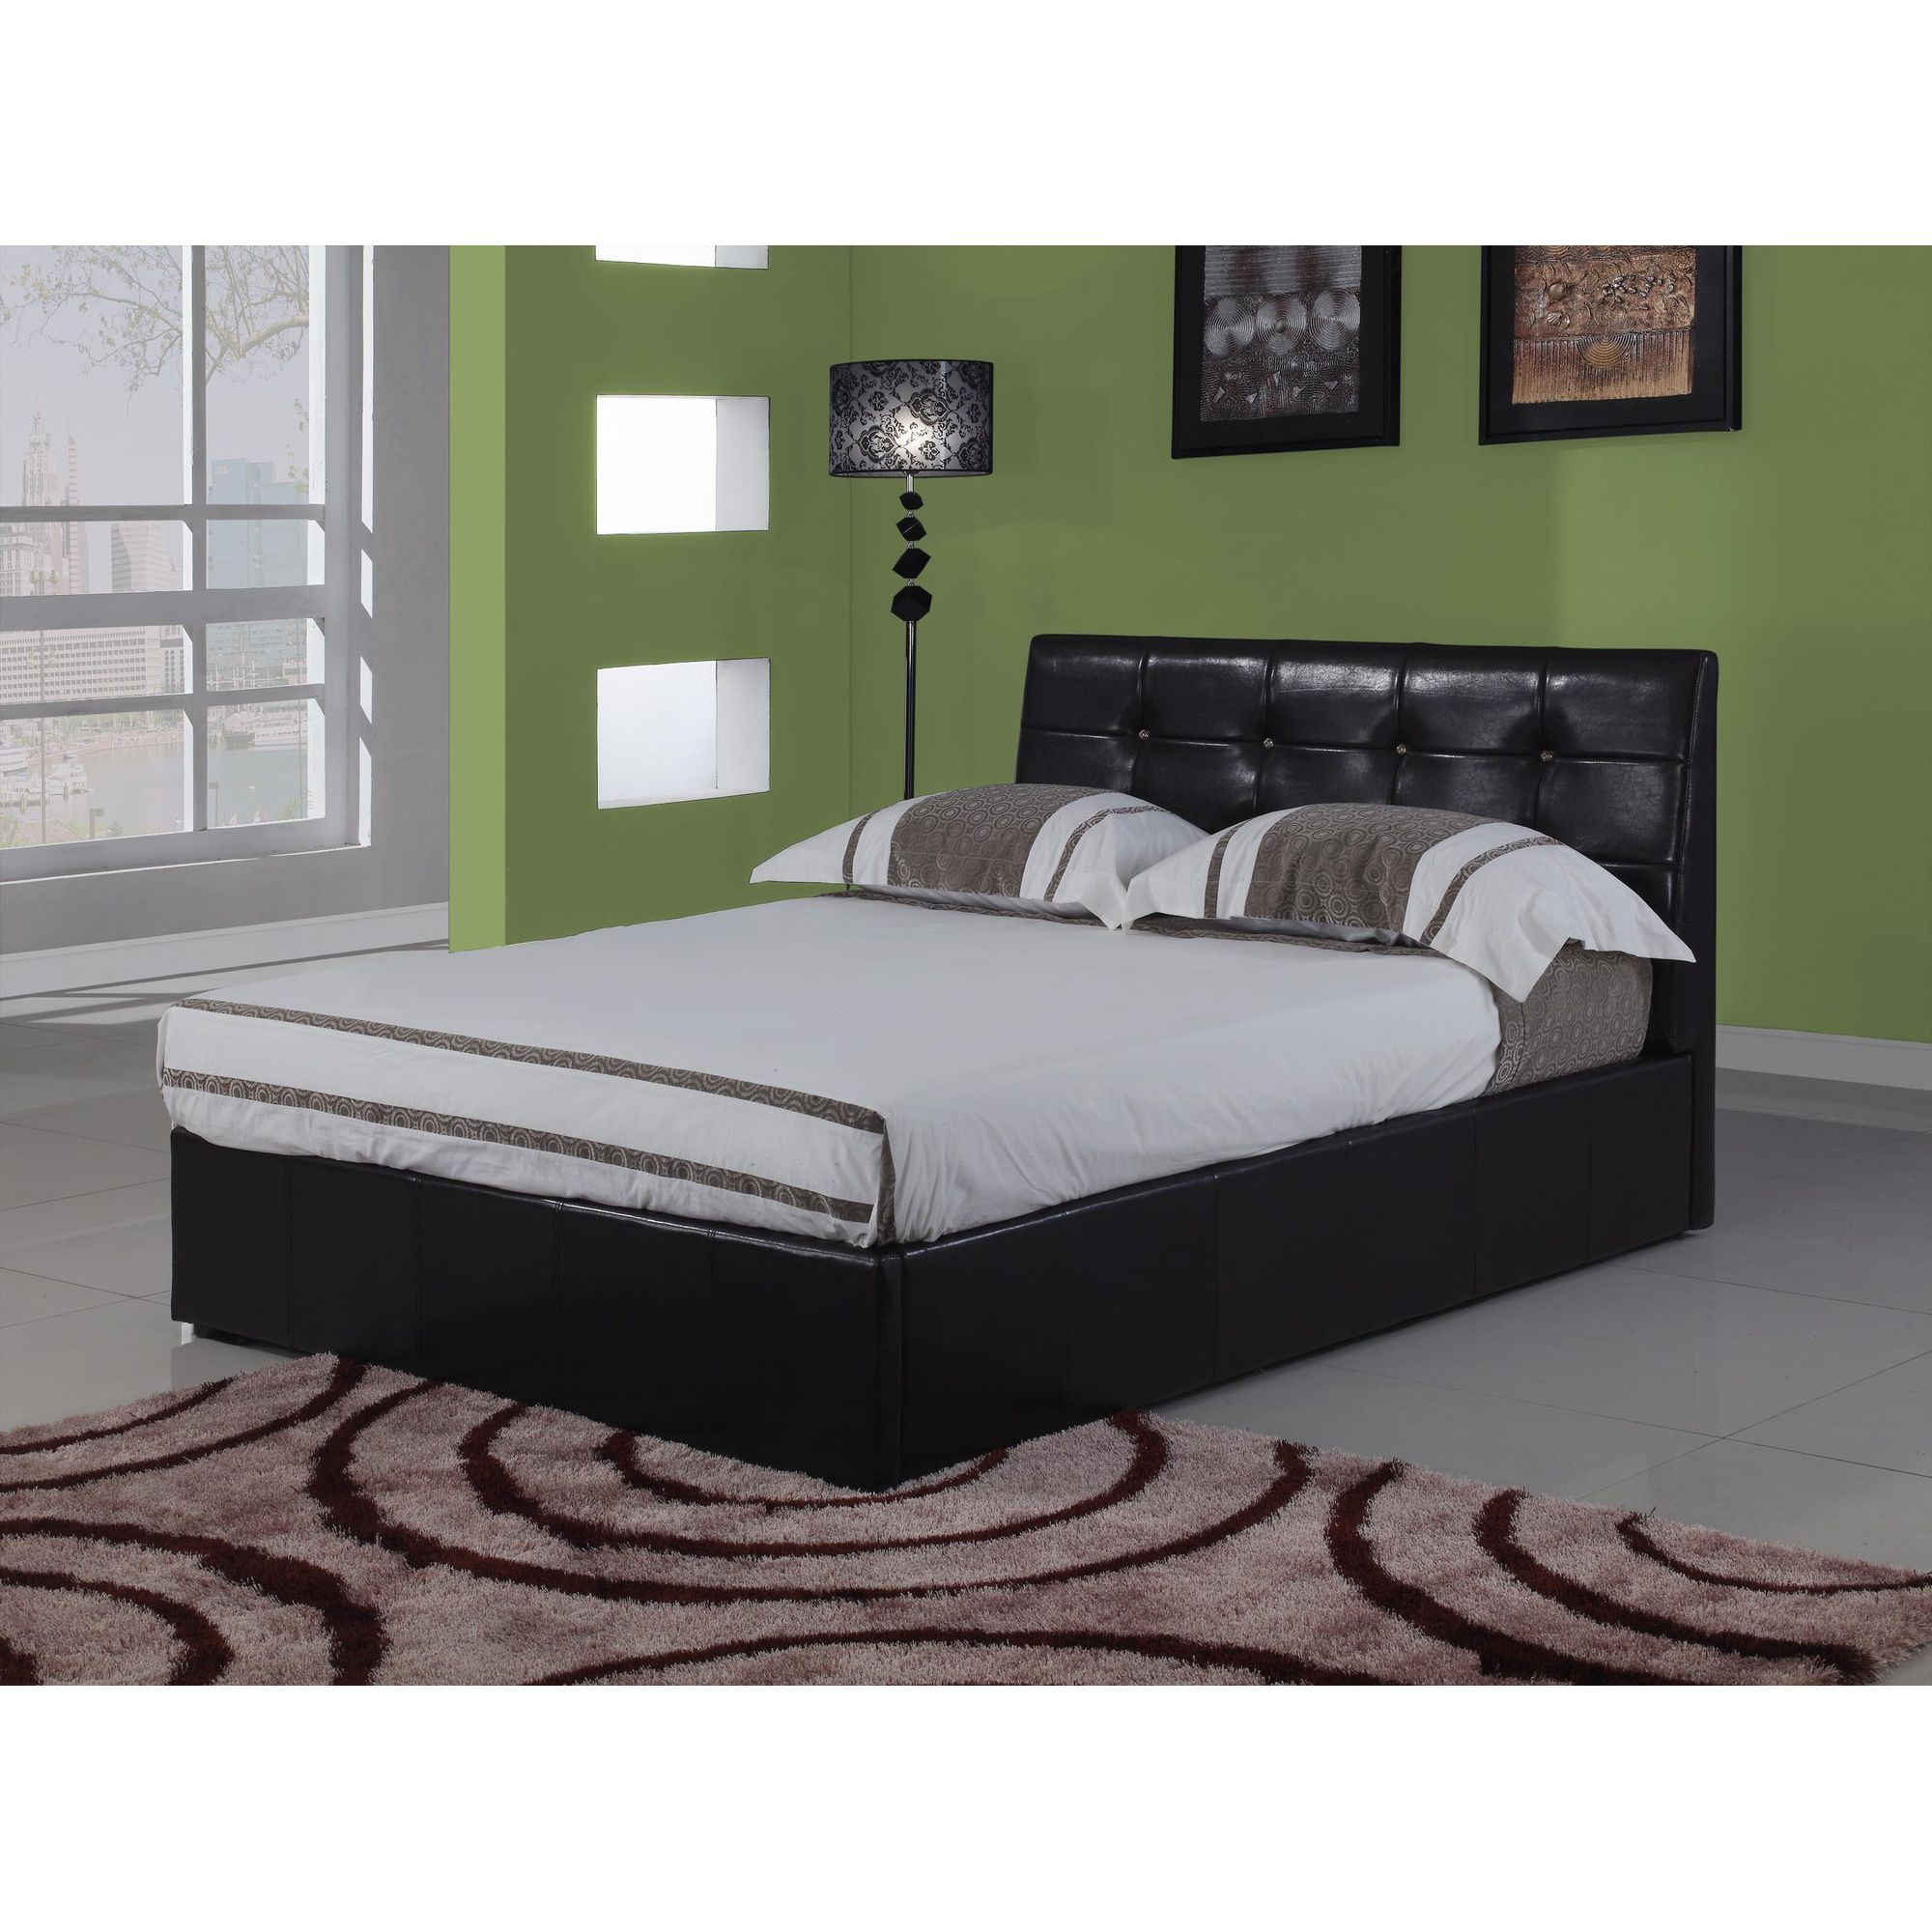 Interiors 2 suit Modena Bedframe - Black - King at Tesco Direct